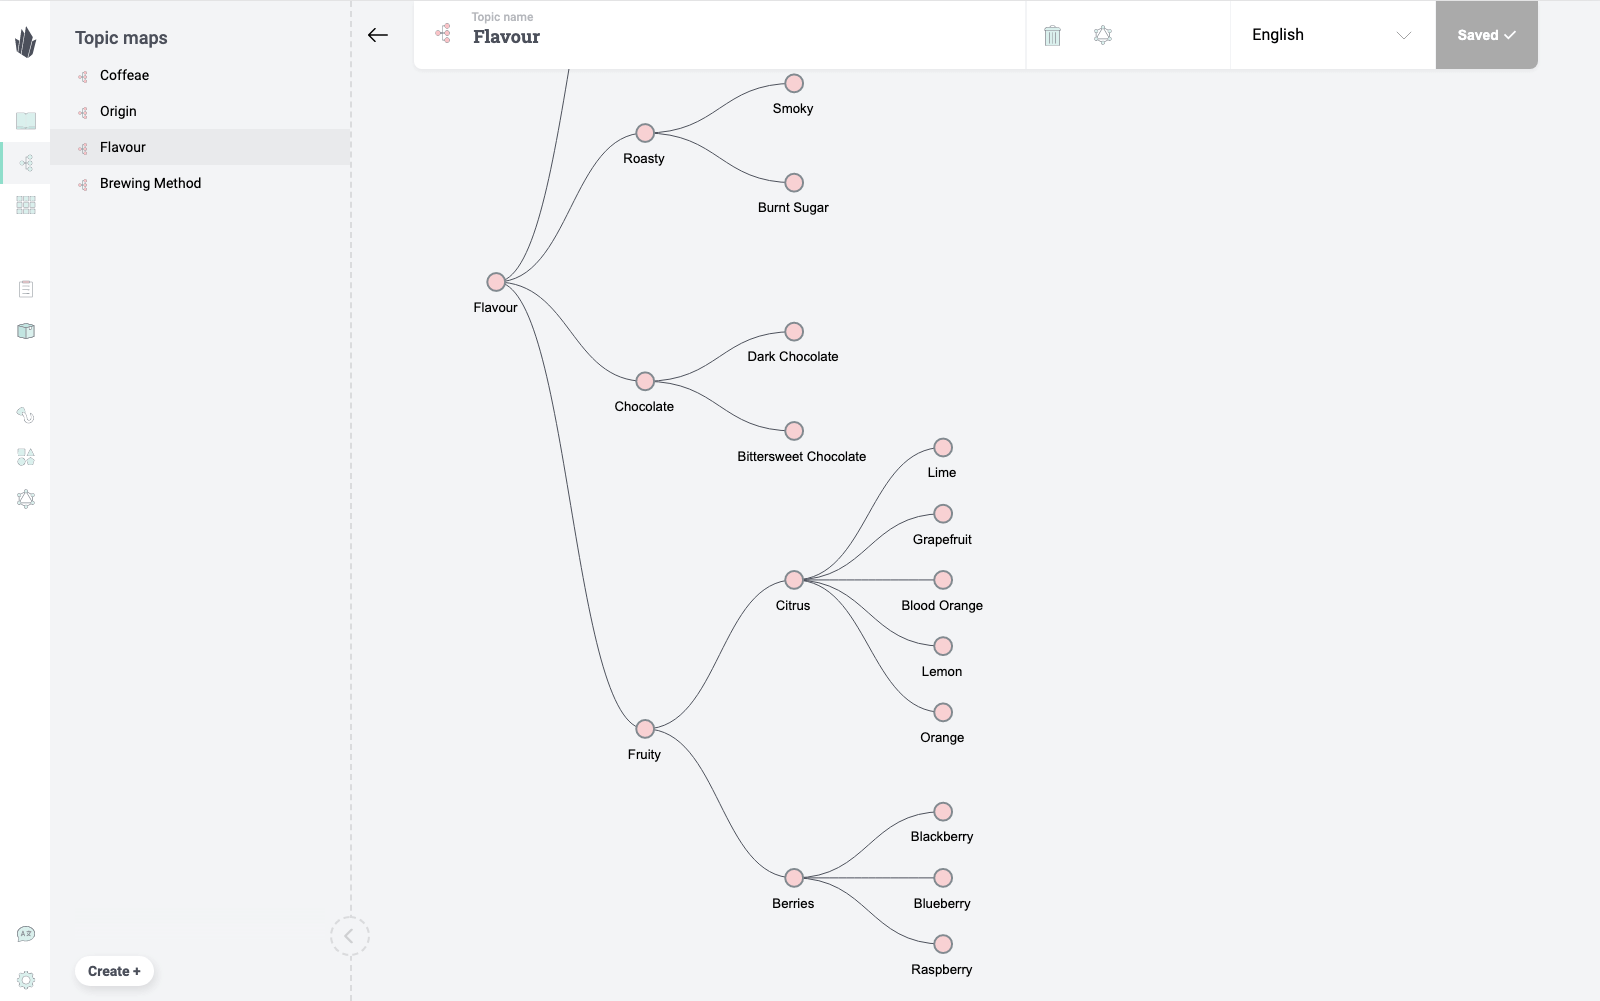 Enrich product taxonomies with multi dimensional topic maps.